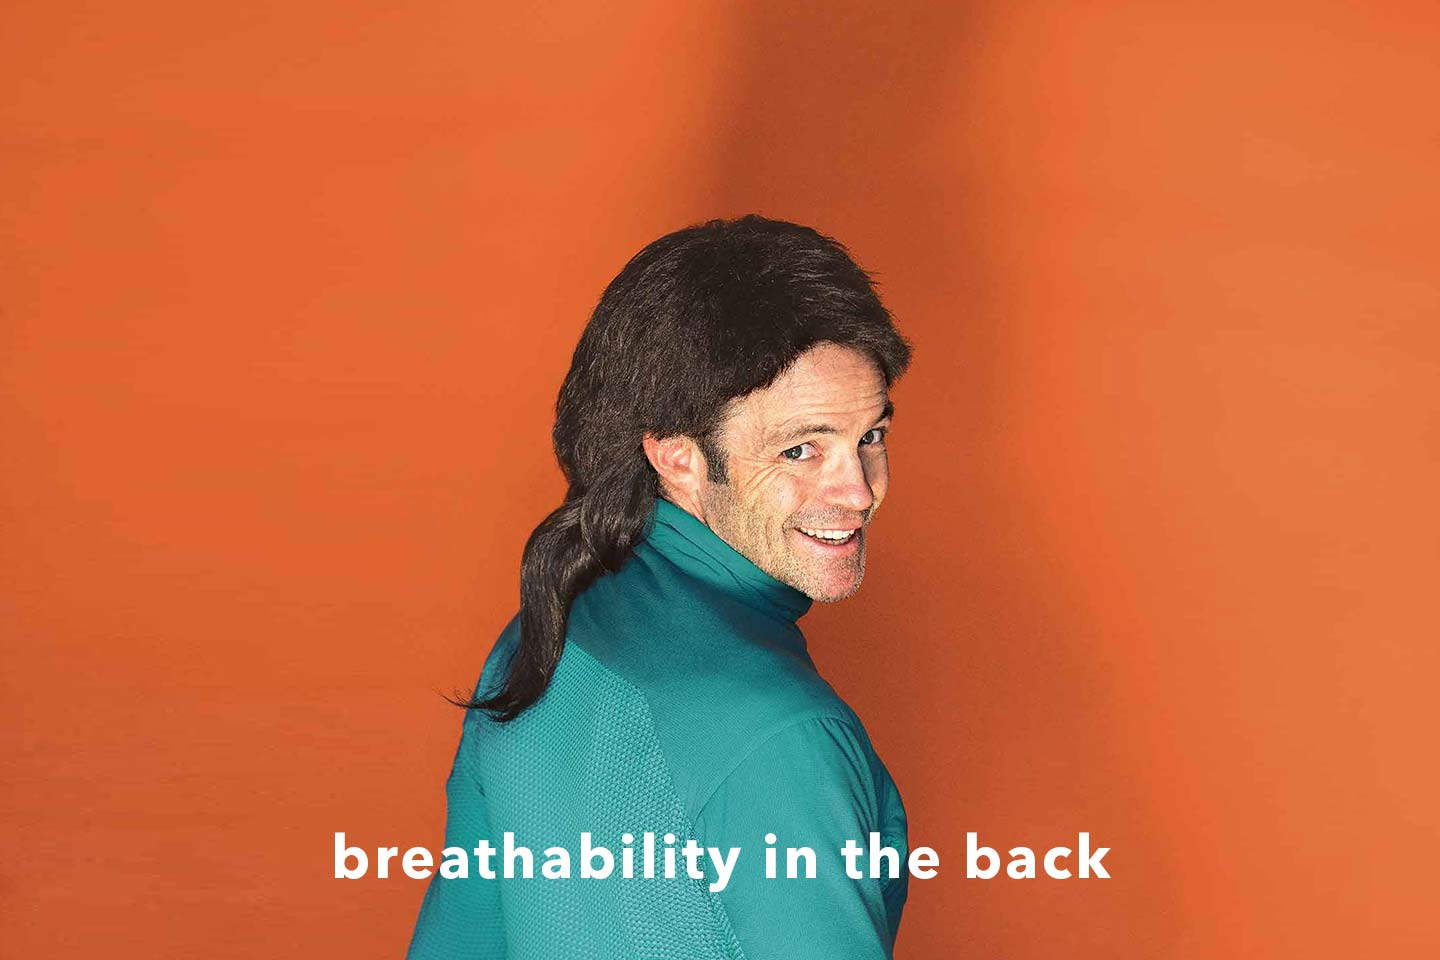 breathability in the back